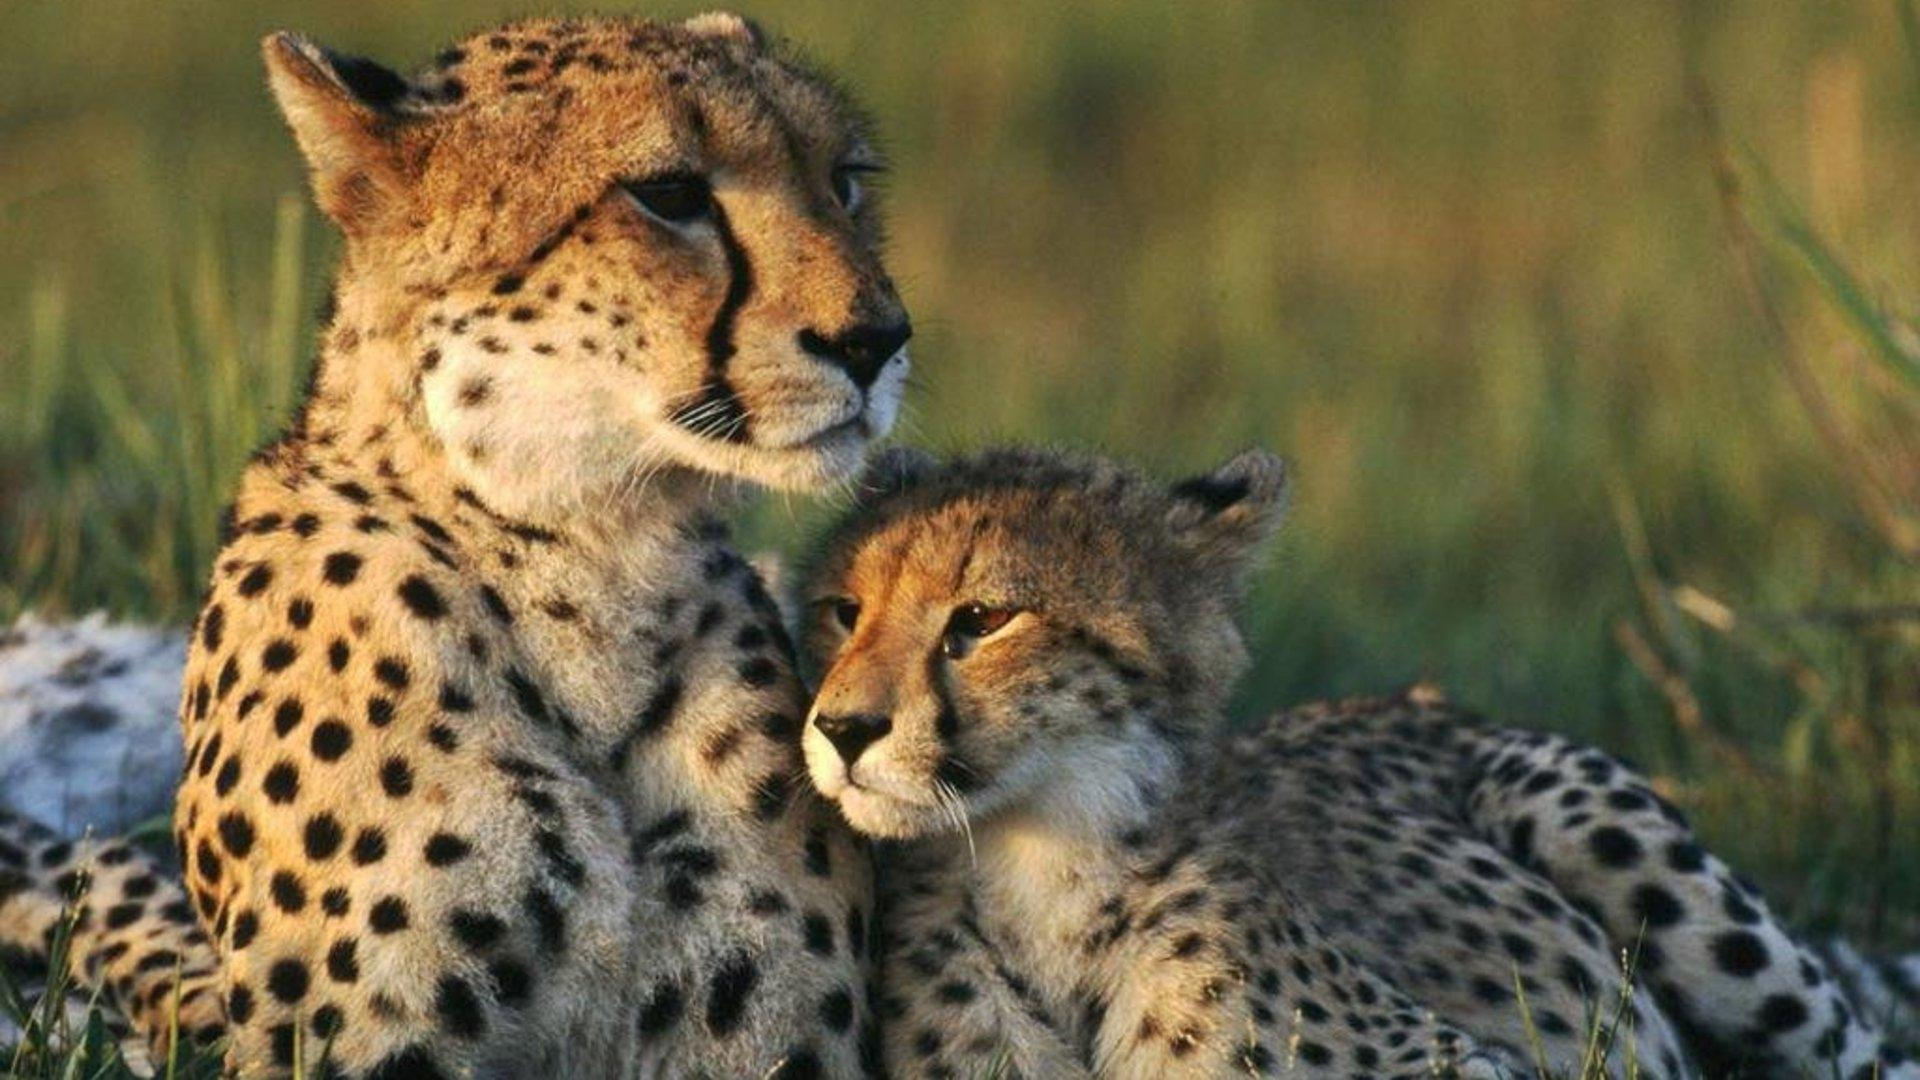 Cheetah HD Wallpapers  Backgrounds  Wallpaper Page  1920x1080